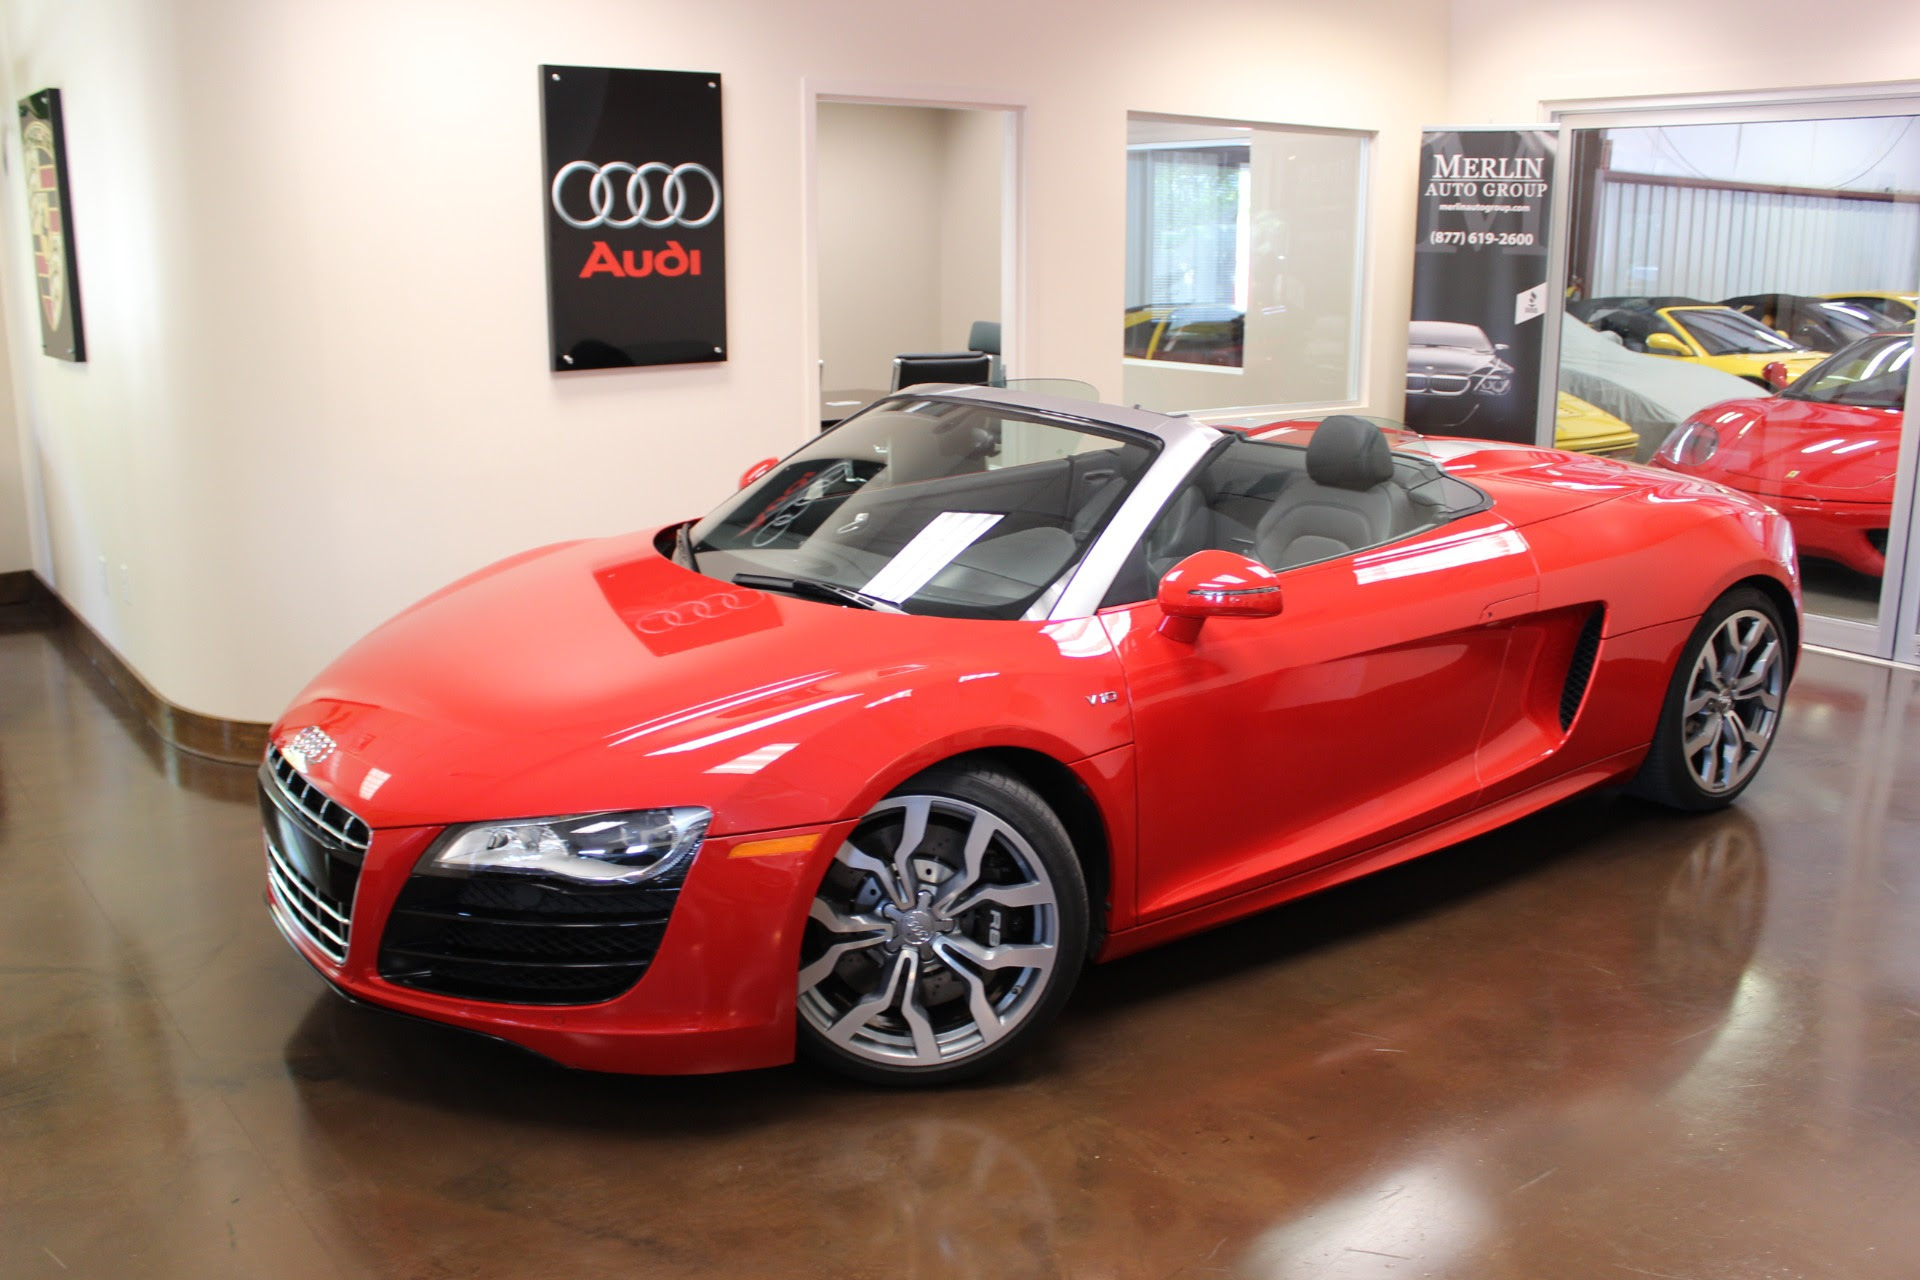 2012 Audi R8 6997 Miles Brilliant Red Convertible V10 5 2l